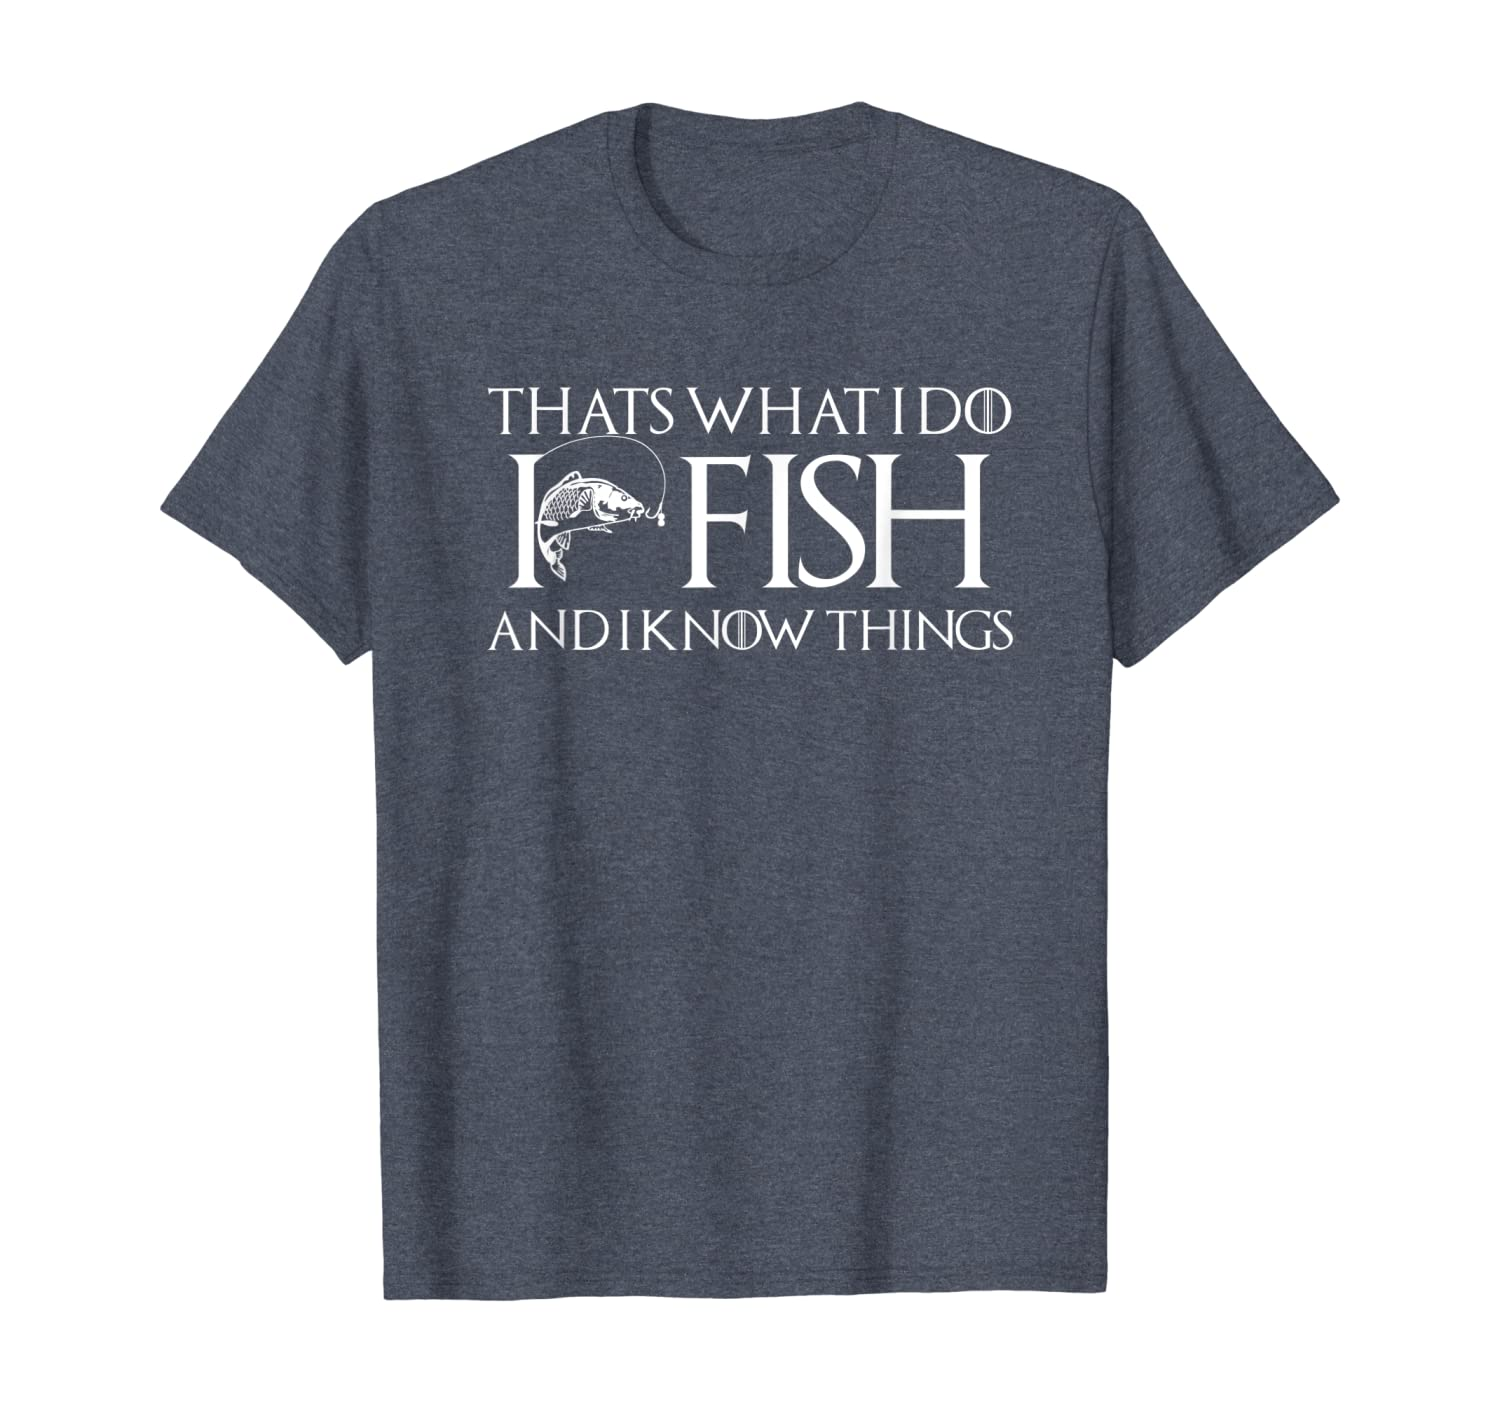 I FISH AND I KNOW THINGS Funny Fisherman Gift T-Shirt